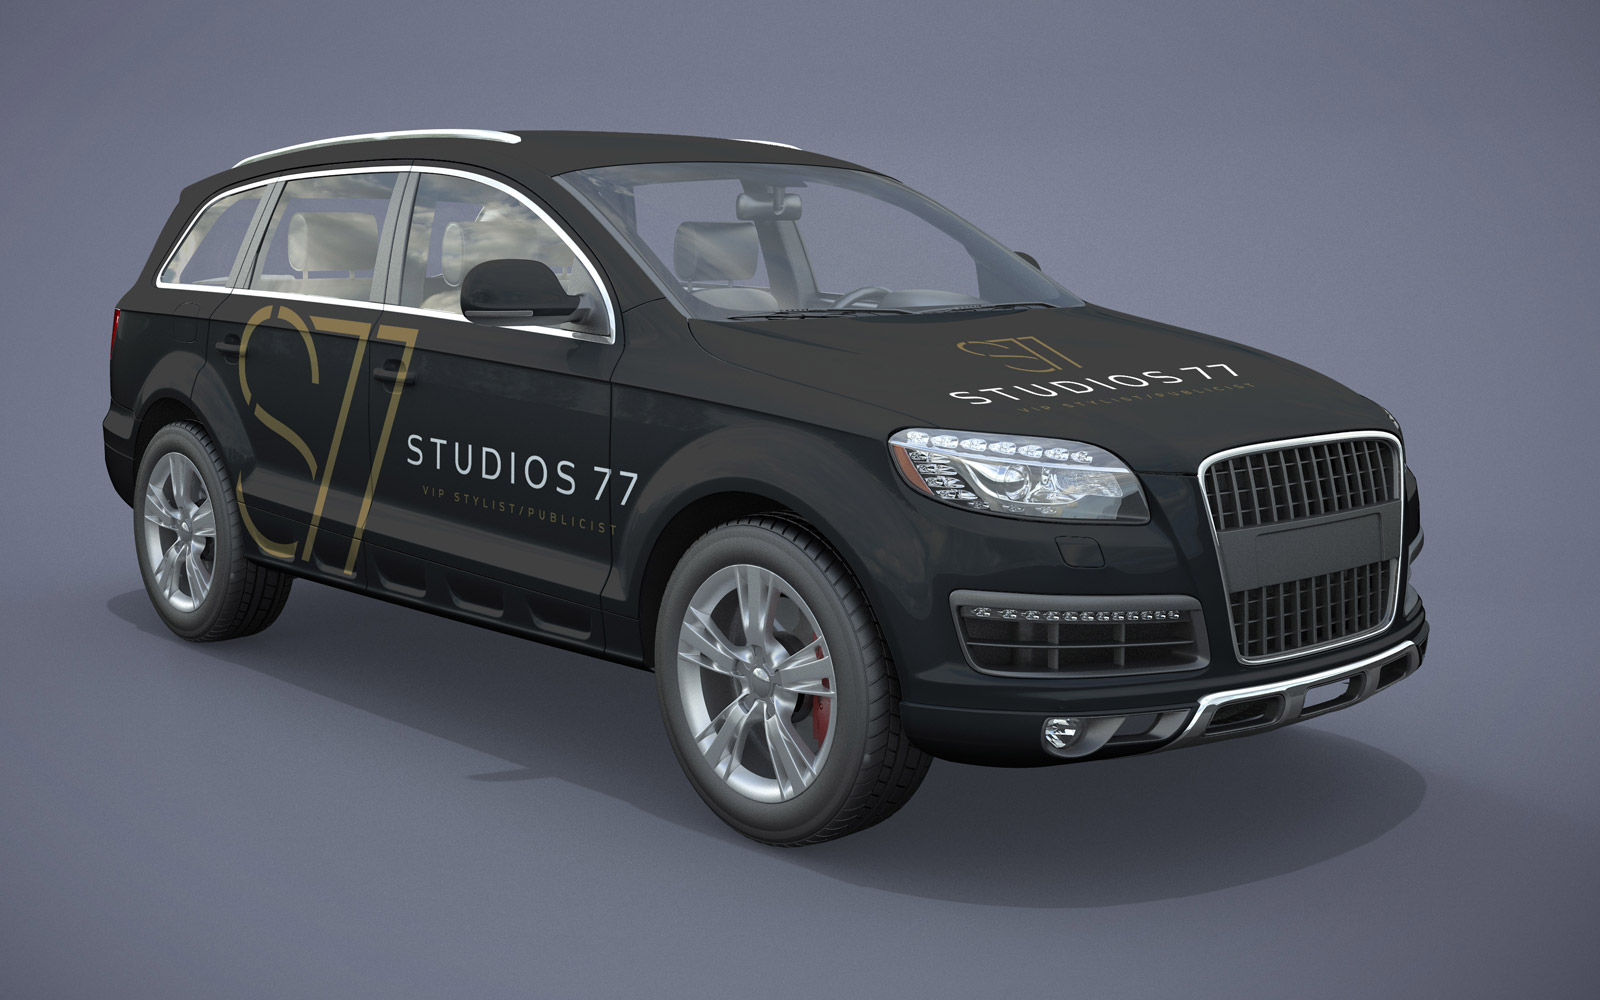 Studios 77 - Car Wrap Design